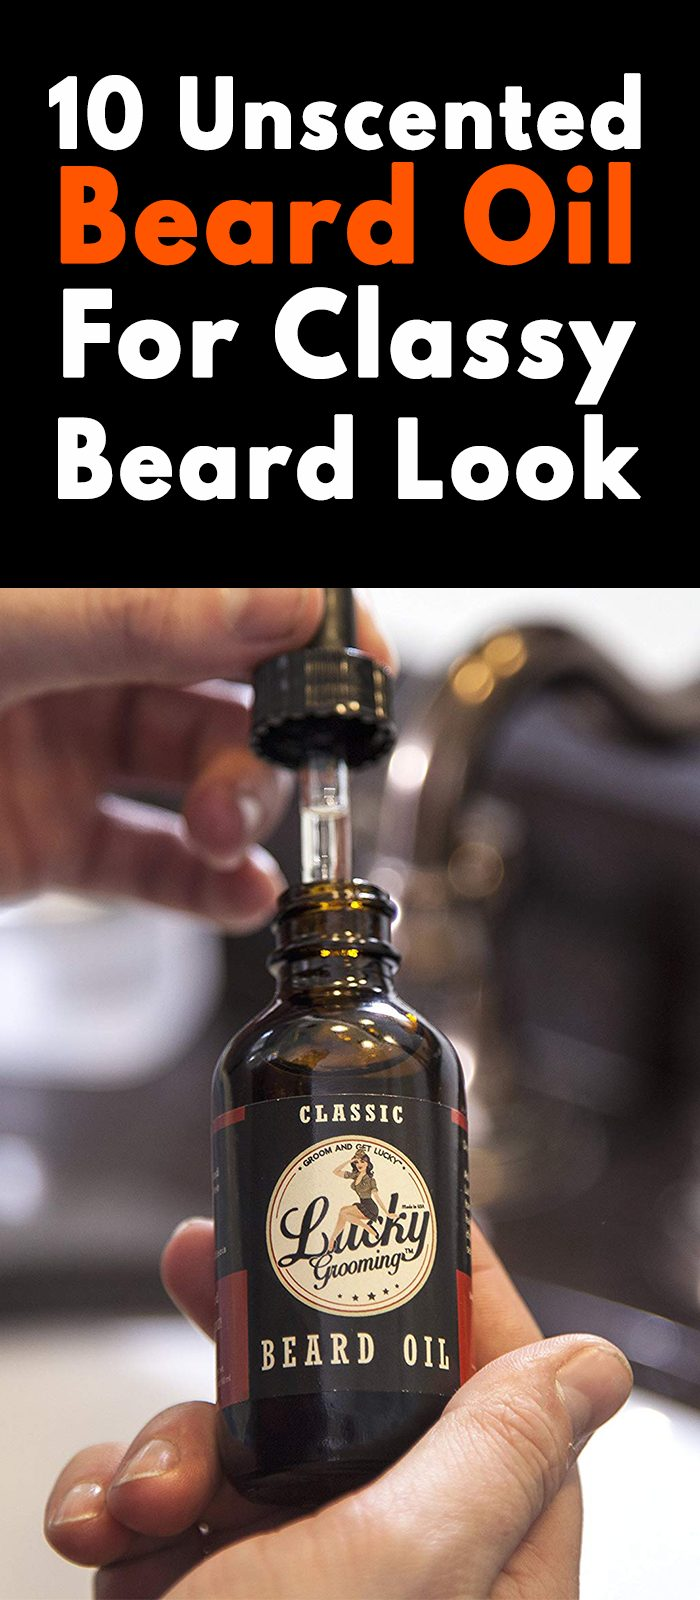 10 Unscented Beard Oil For Classy Beard Look